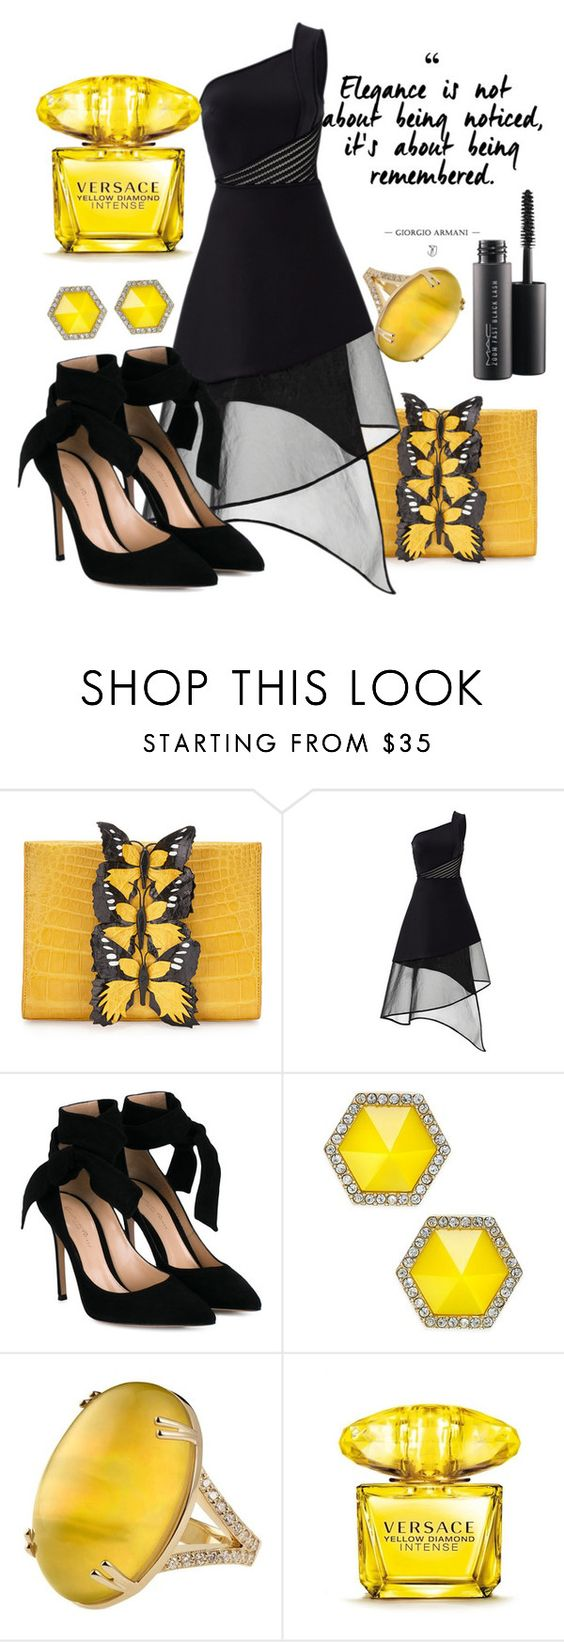 """Black and Yellow"" by faheemak ❤ liked on Polyvore featuring Nancy Gonzalez, David Koma, Gianvito Rossi, ABS by Allen Schwartz, Versace and MAC Cosmetics"